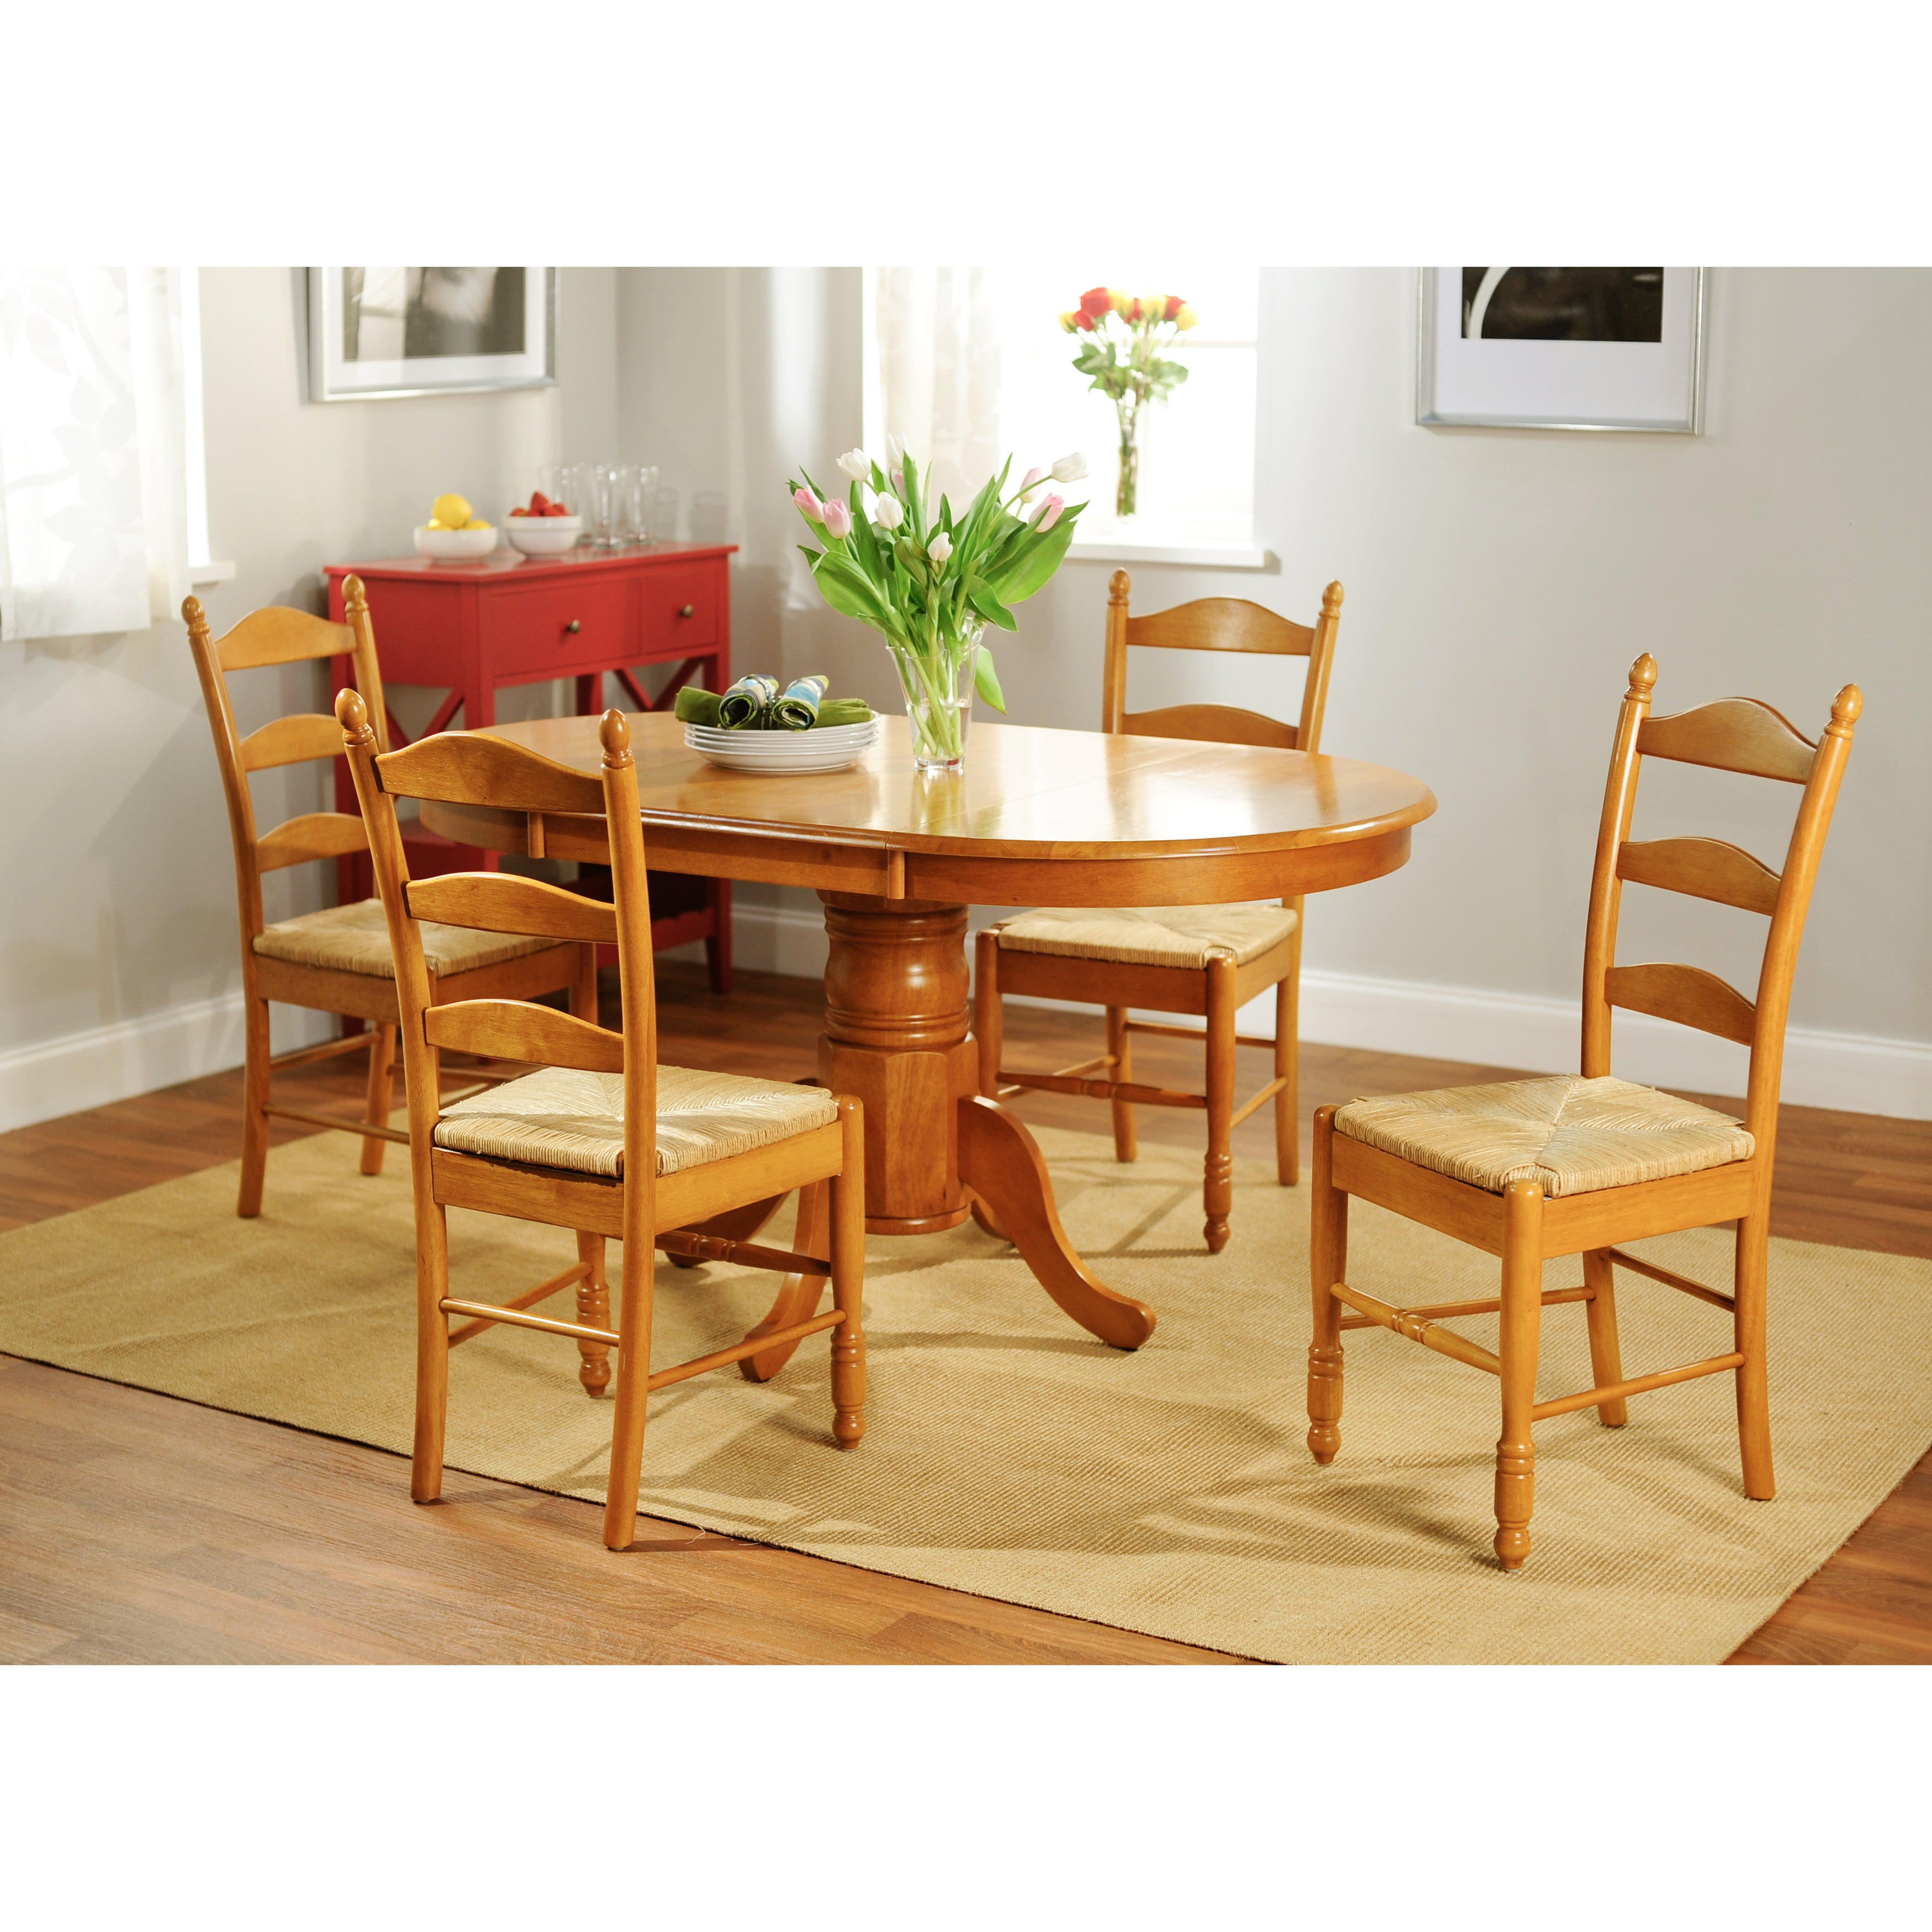 Country Kitchen Dining Set: Shop Simple Living Oak Finish 5-piece Ladderback Dining